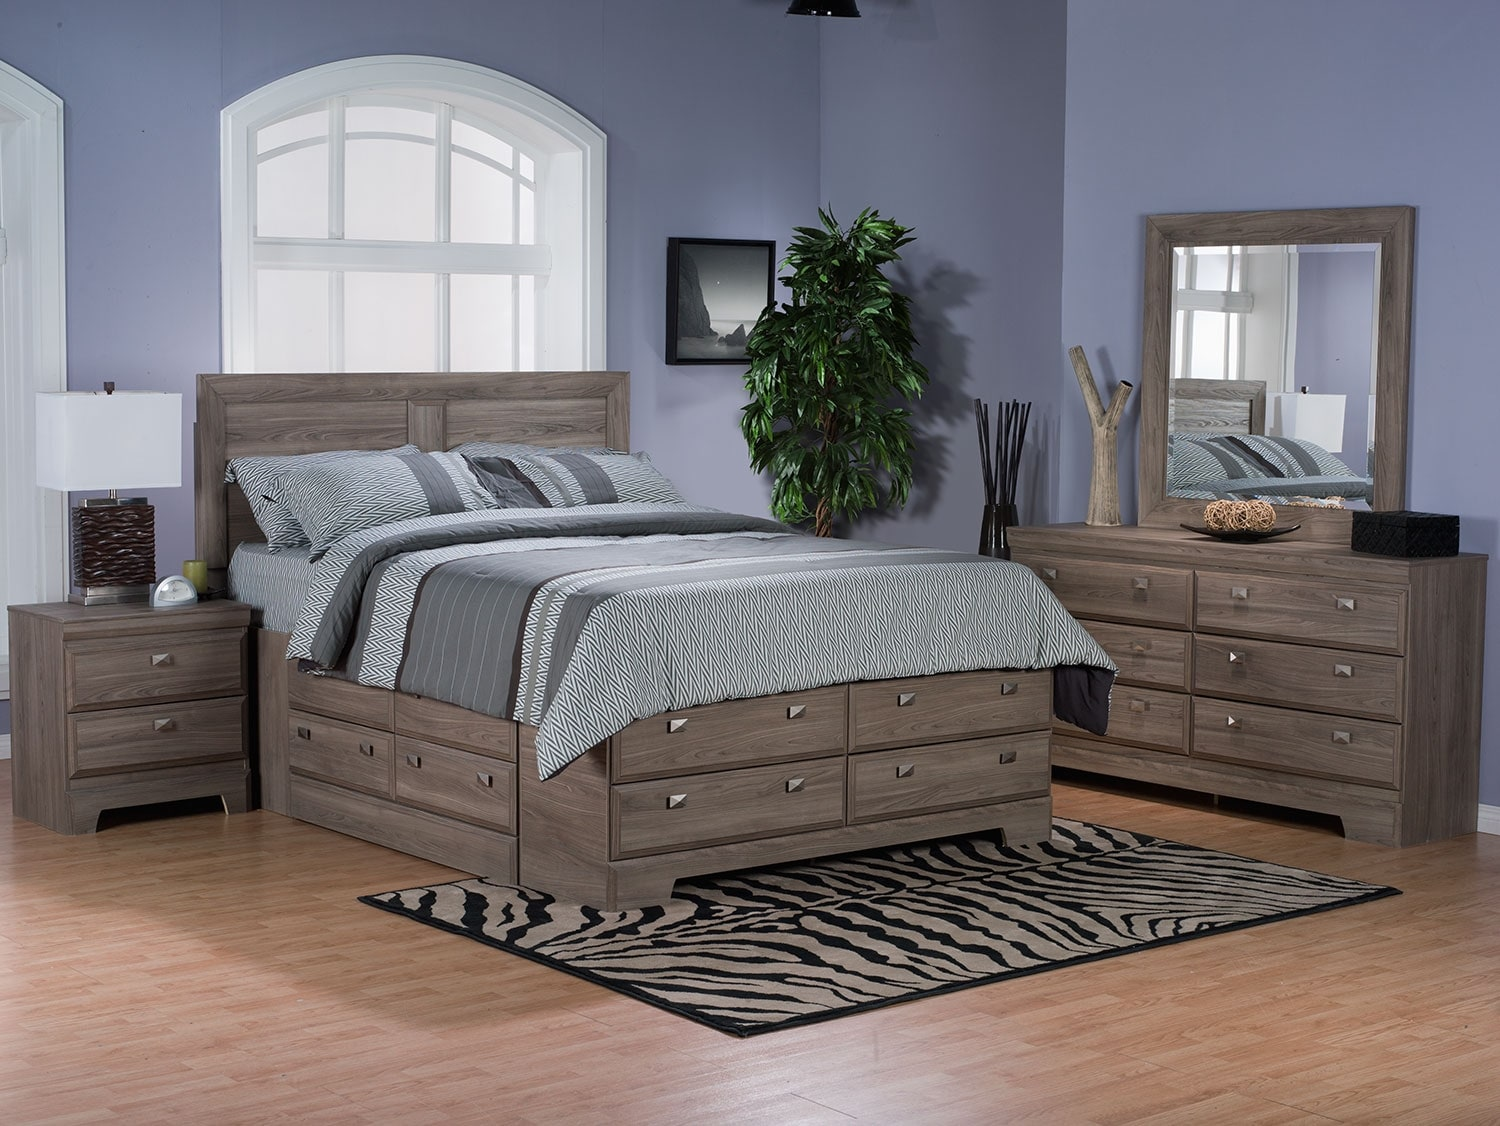 Bedroom Furniture - Yorkdale Light 6-Piece Full Storage Bedroom Package